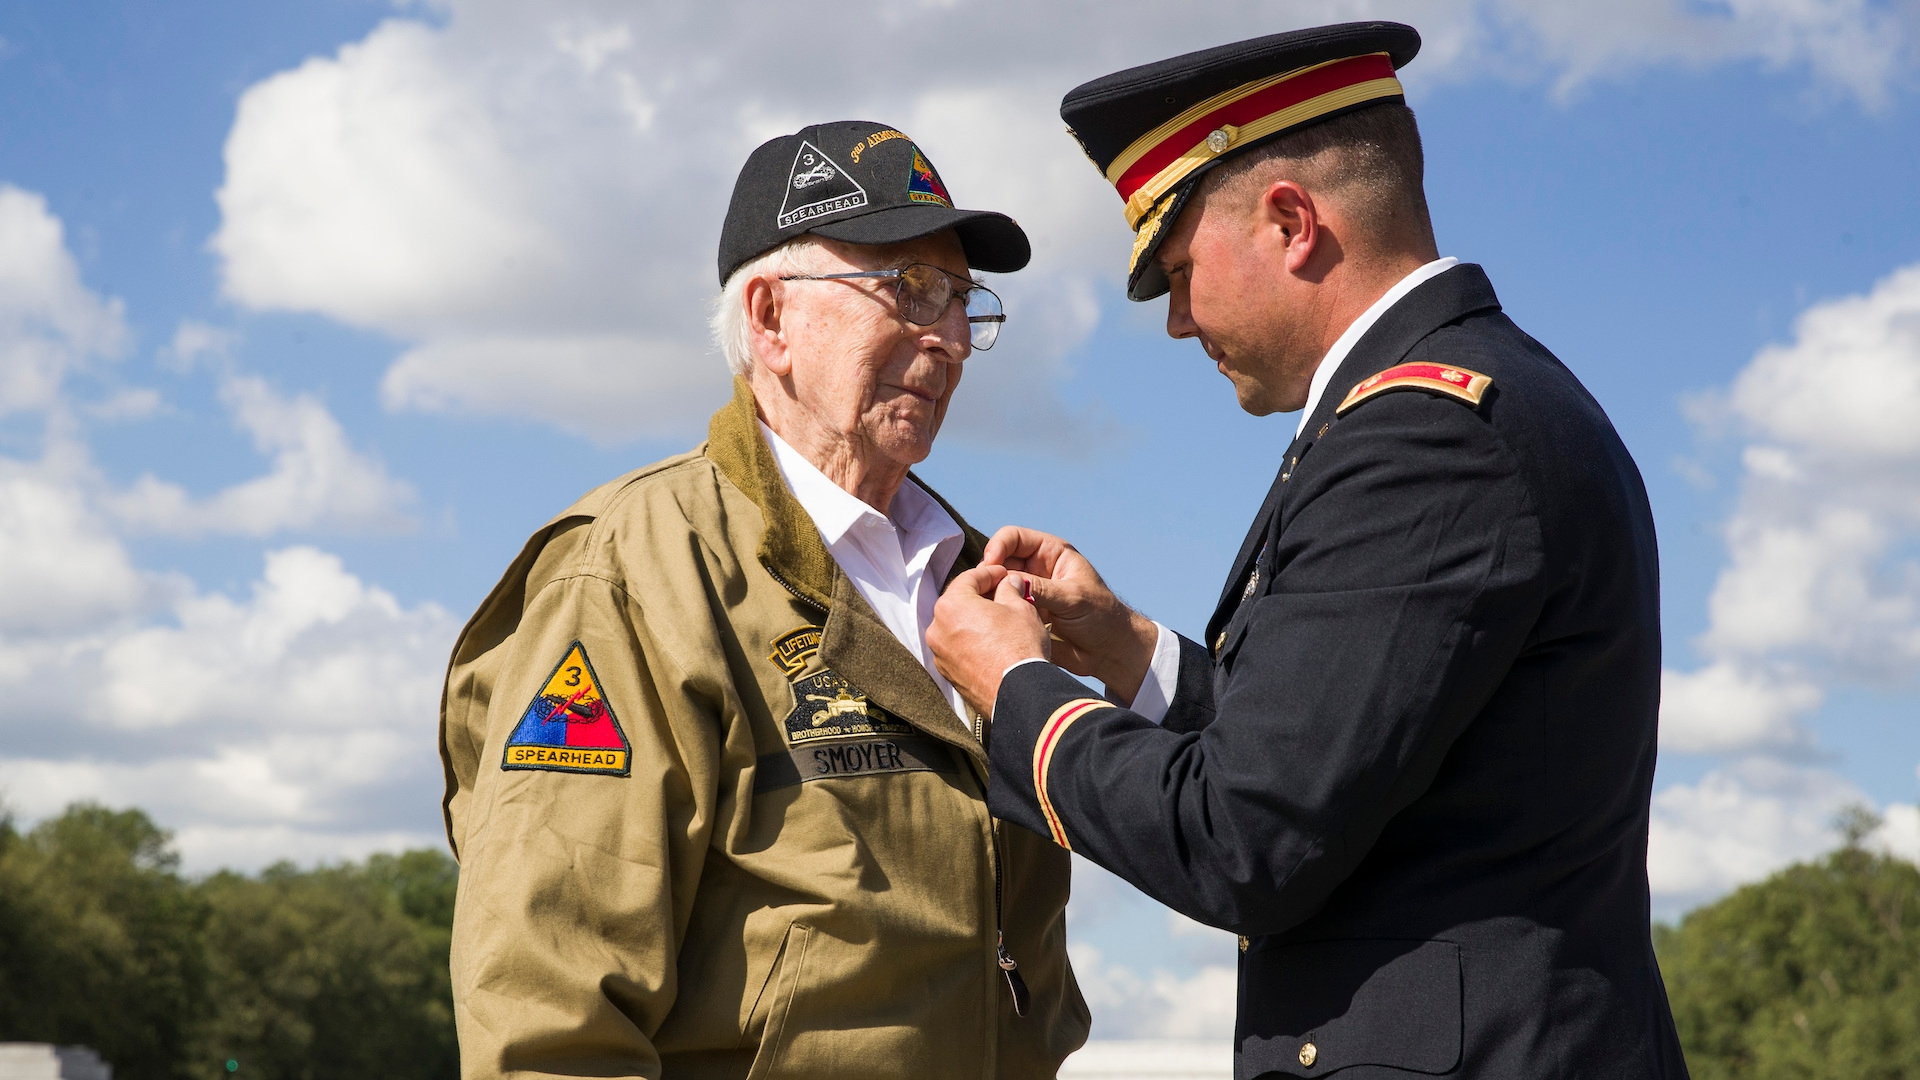 U.S. tank crew receives medals for valor 74 years after gripping duel